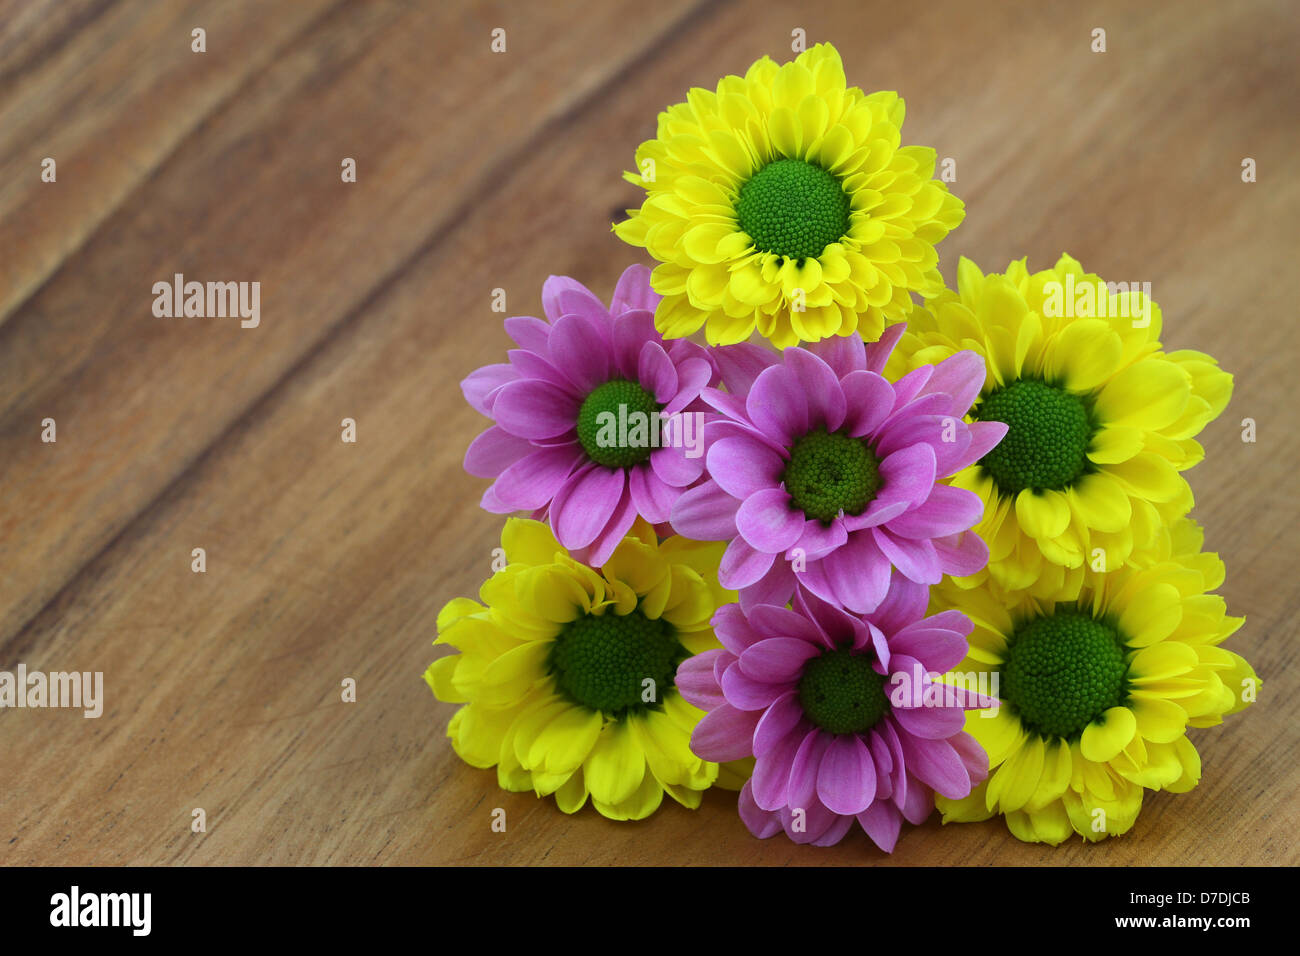 Yellow And Pink Santini Flower Bouquet On Wooden Surface With Copy